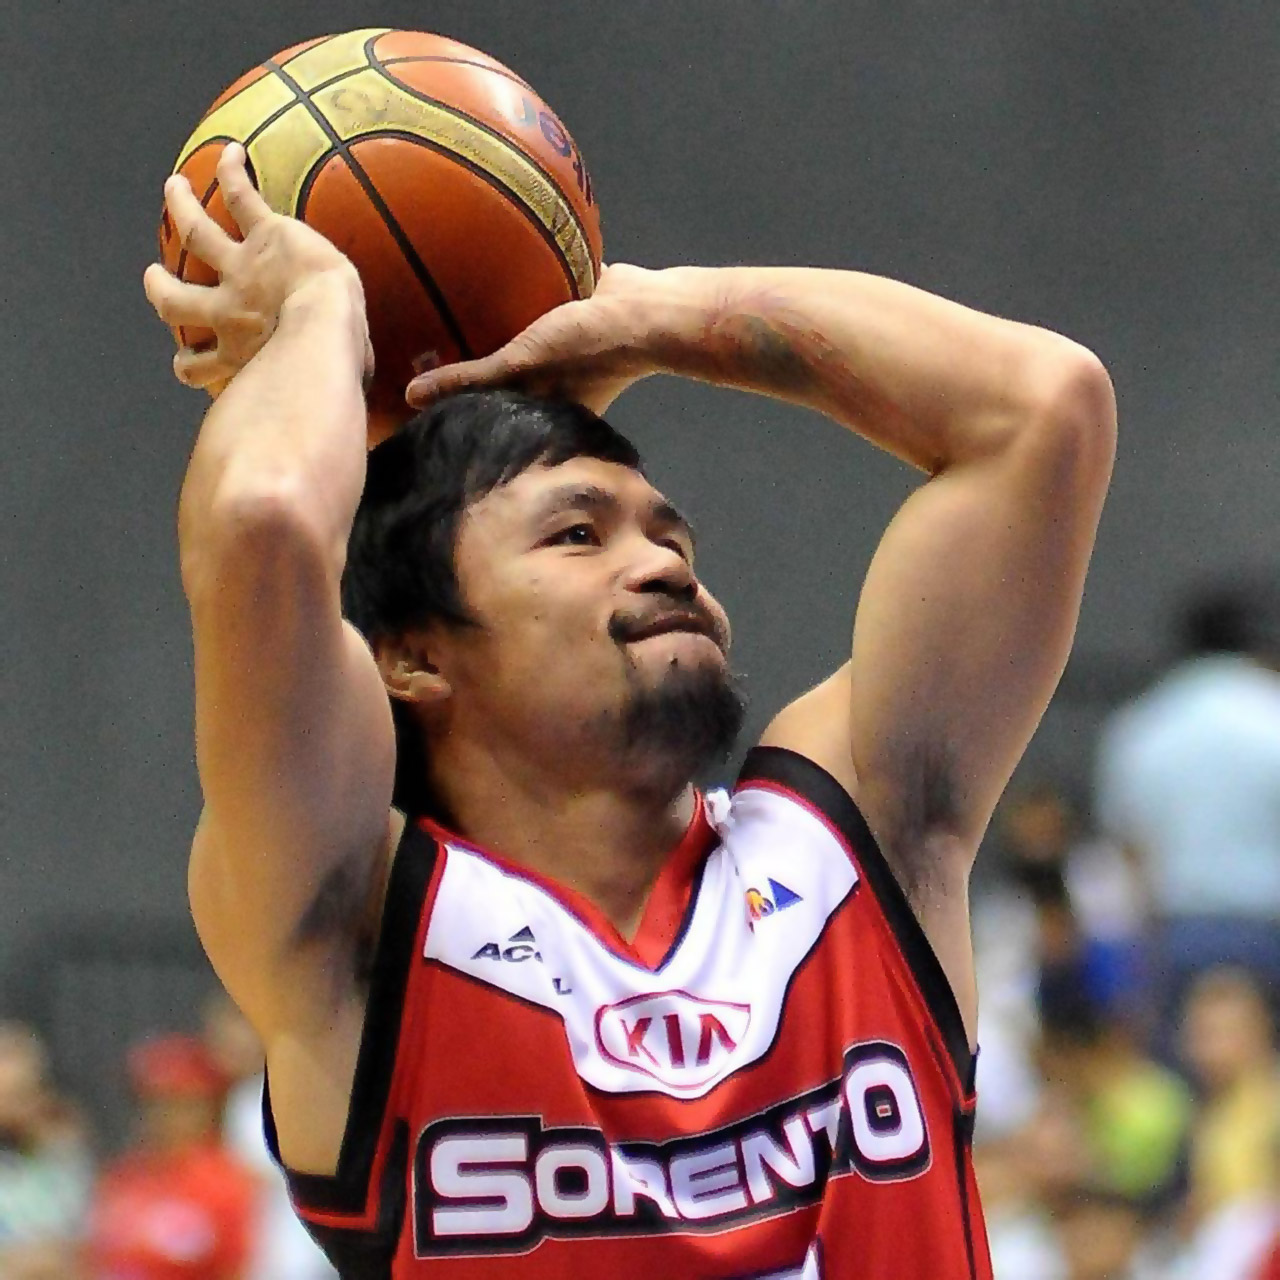 Manny Pacquiao Prepares to shoot the basketball for Kia Sorento